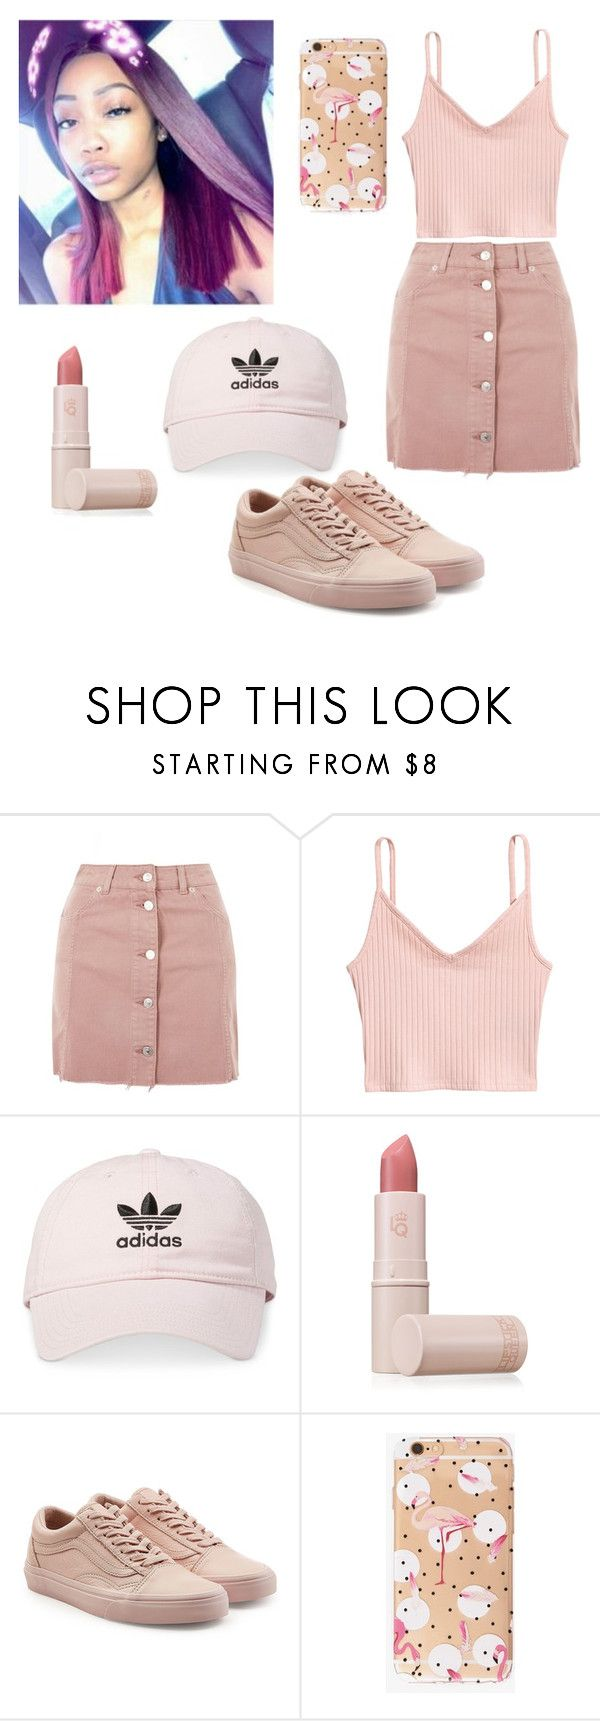 """Fresh off the boat'"" by majesticqveenn ❤ liked on Polyvore featuring Topshop, adidas, Lipstick Queen and Vans"